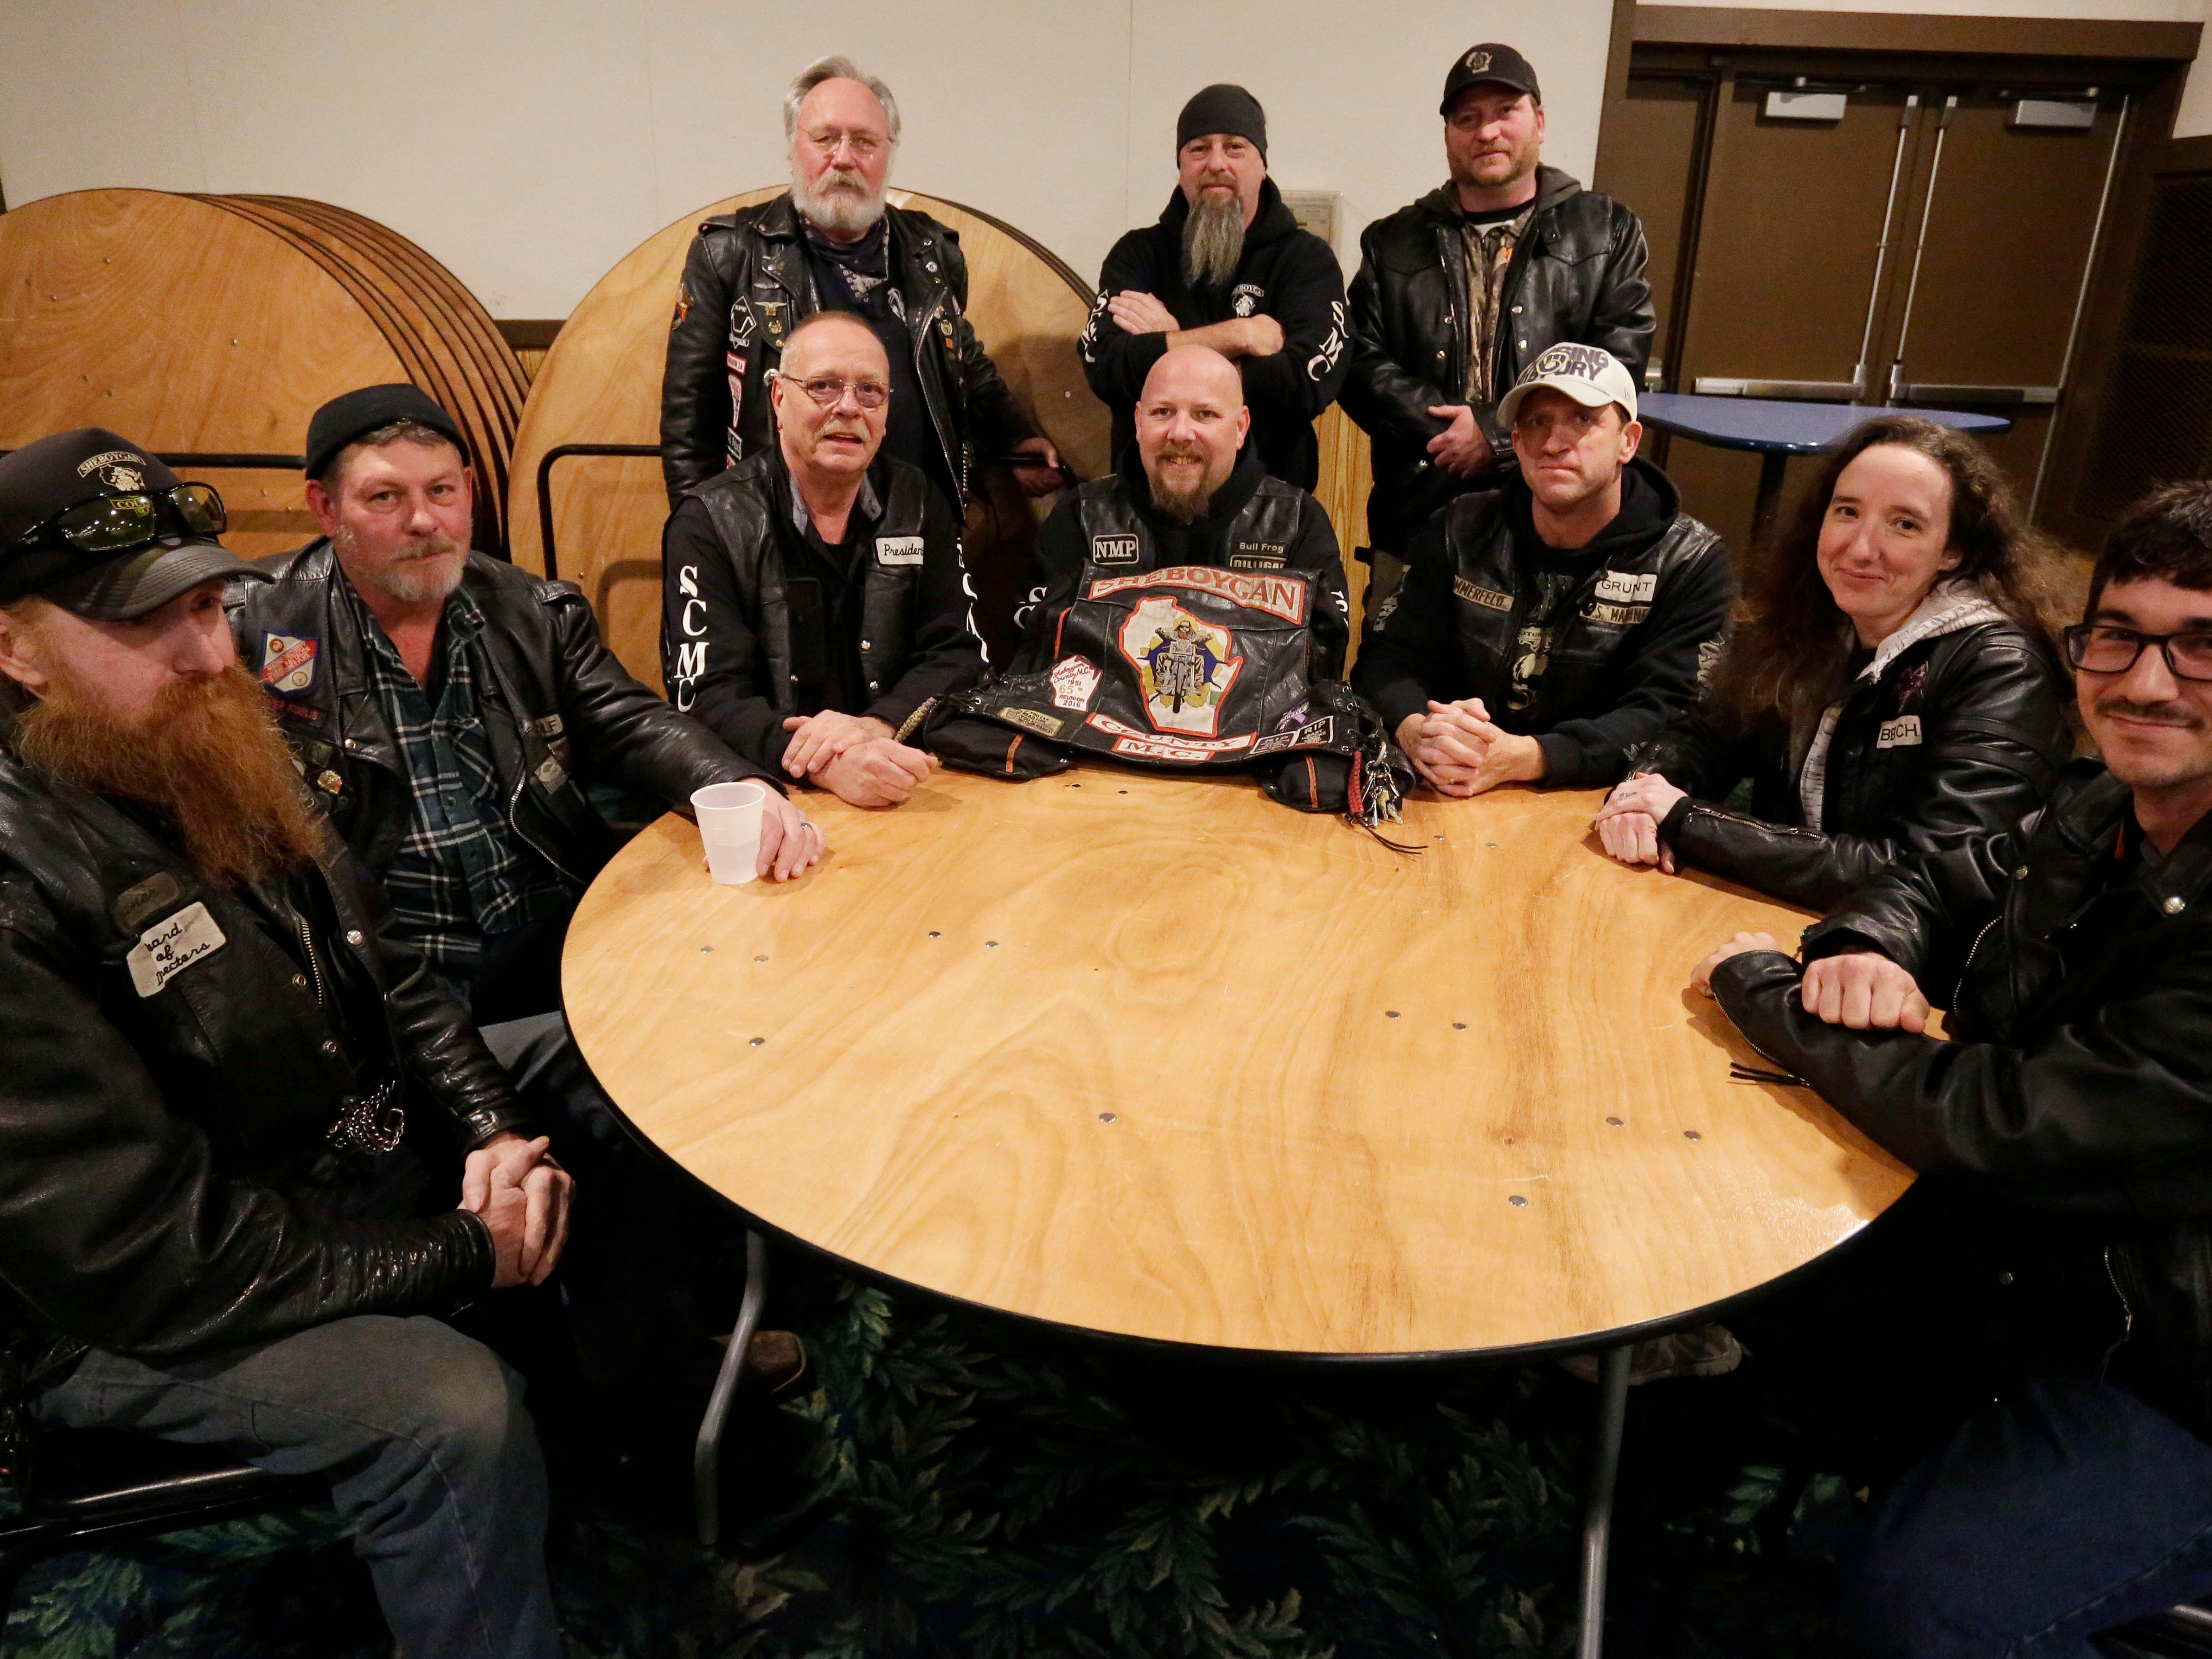 Members of the Sheboygan County Motorcycle club pose at Lakeshore Lanes, Tuesday, December 4, 2018, in Sheboygan, Wis. The club raised and donated $5,000 to the Shop with a Cop program. The program, in its 21st year, raises funds to give children a chance to buy holiday gifts that they otherwise might not receive.